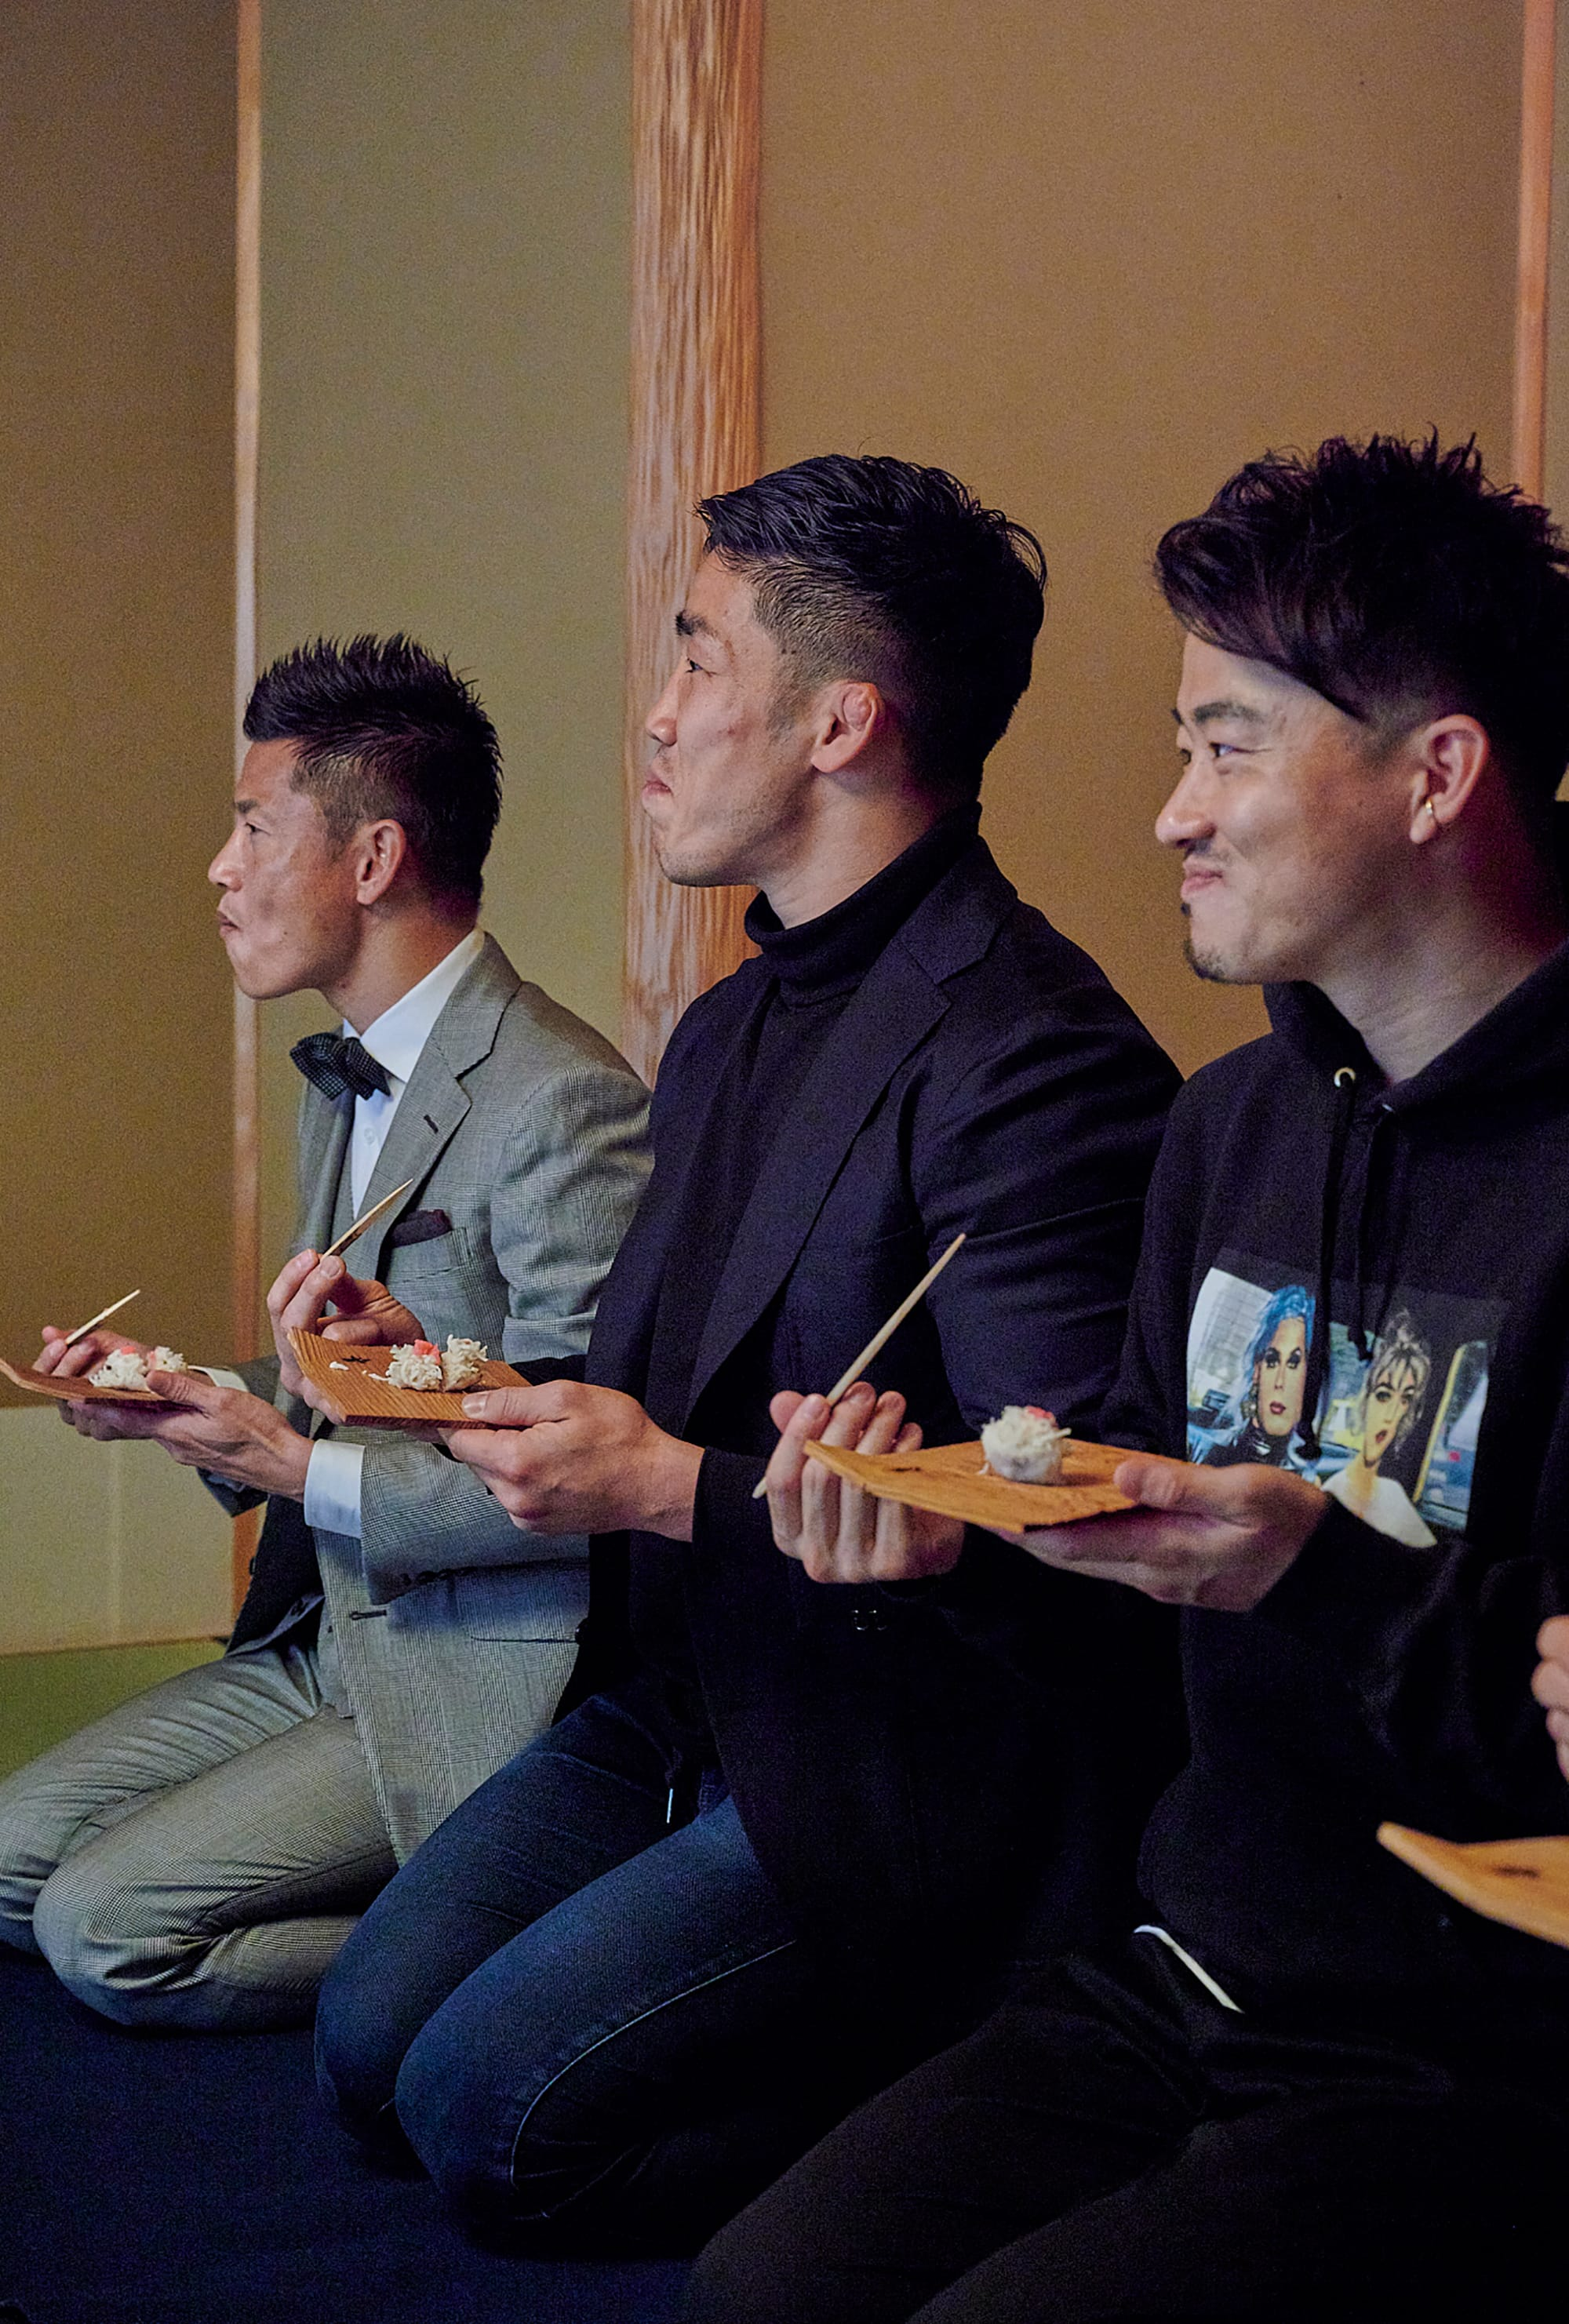 By the time the sweets appeared in front of the athletes, the atmosphere had become relaxed. From the left, Ryuji Bando, Shokei Kin and Shingo Maeda.